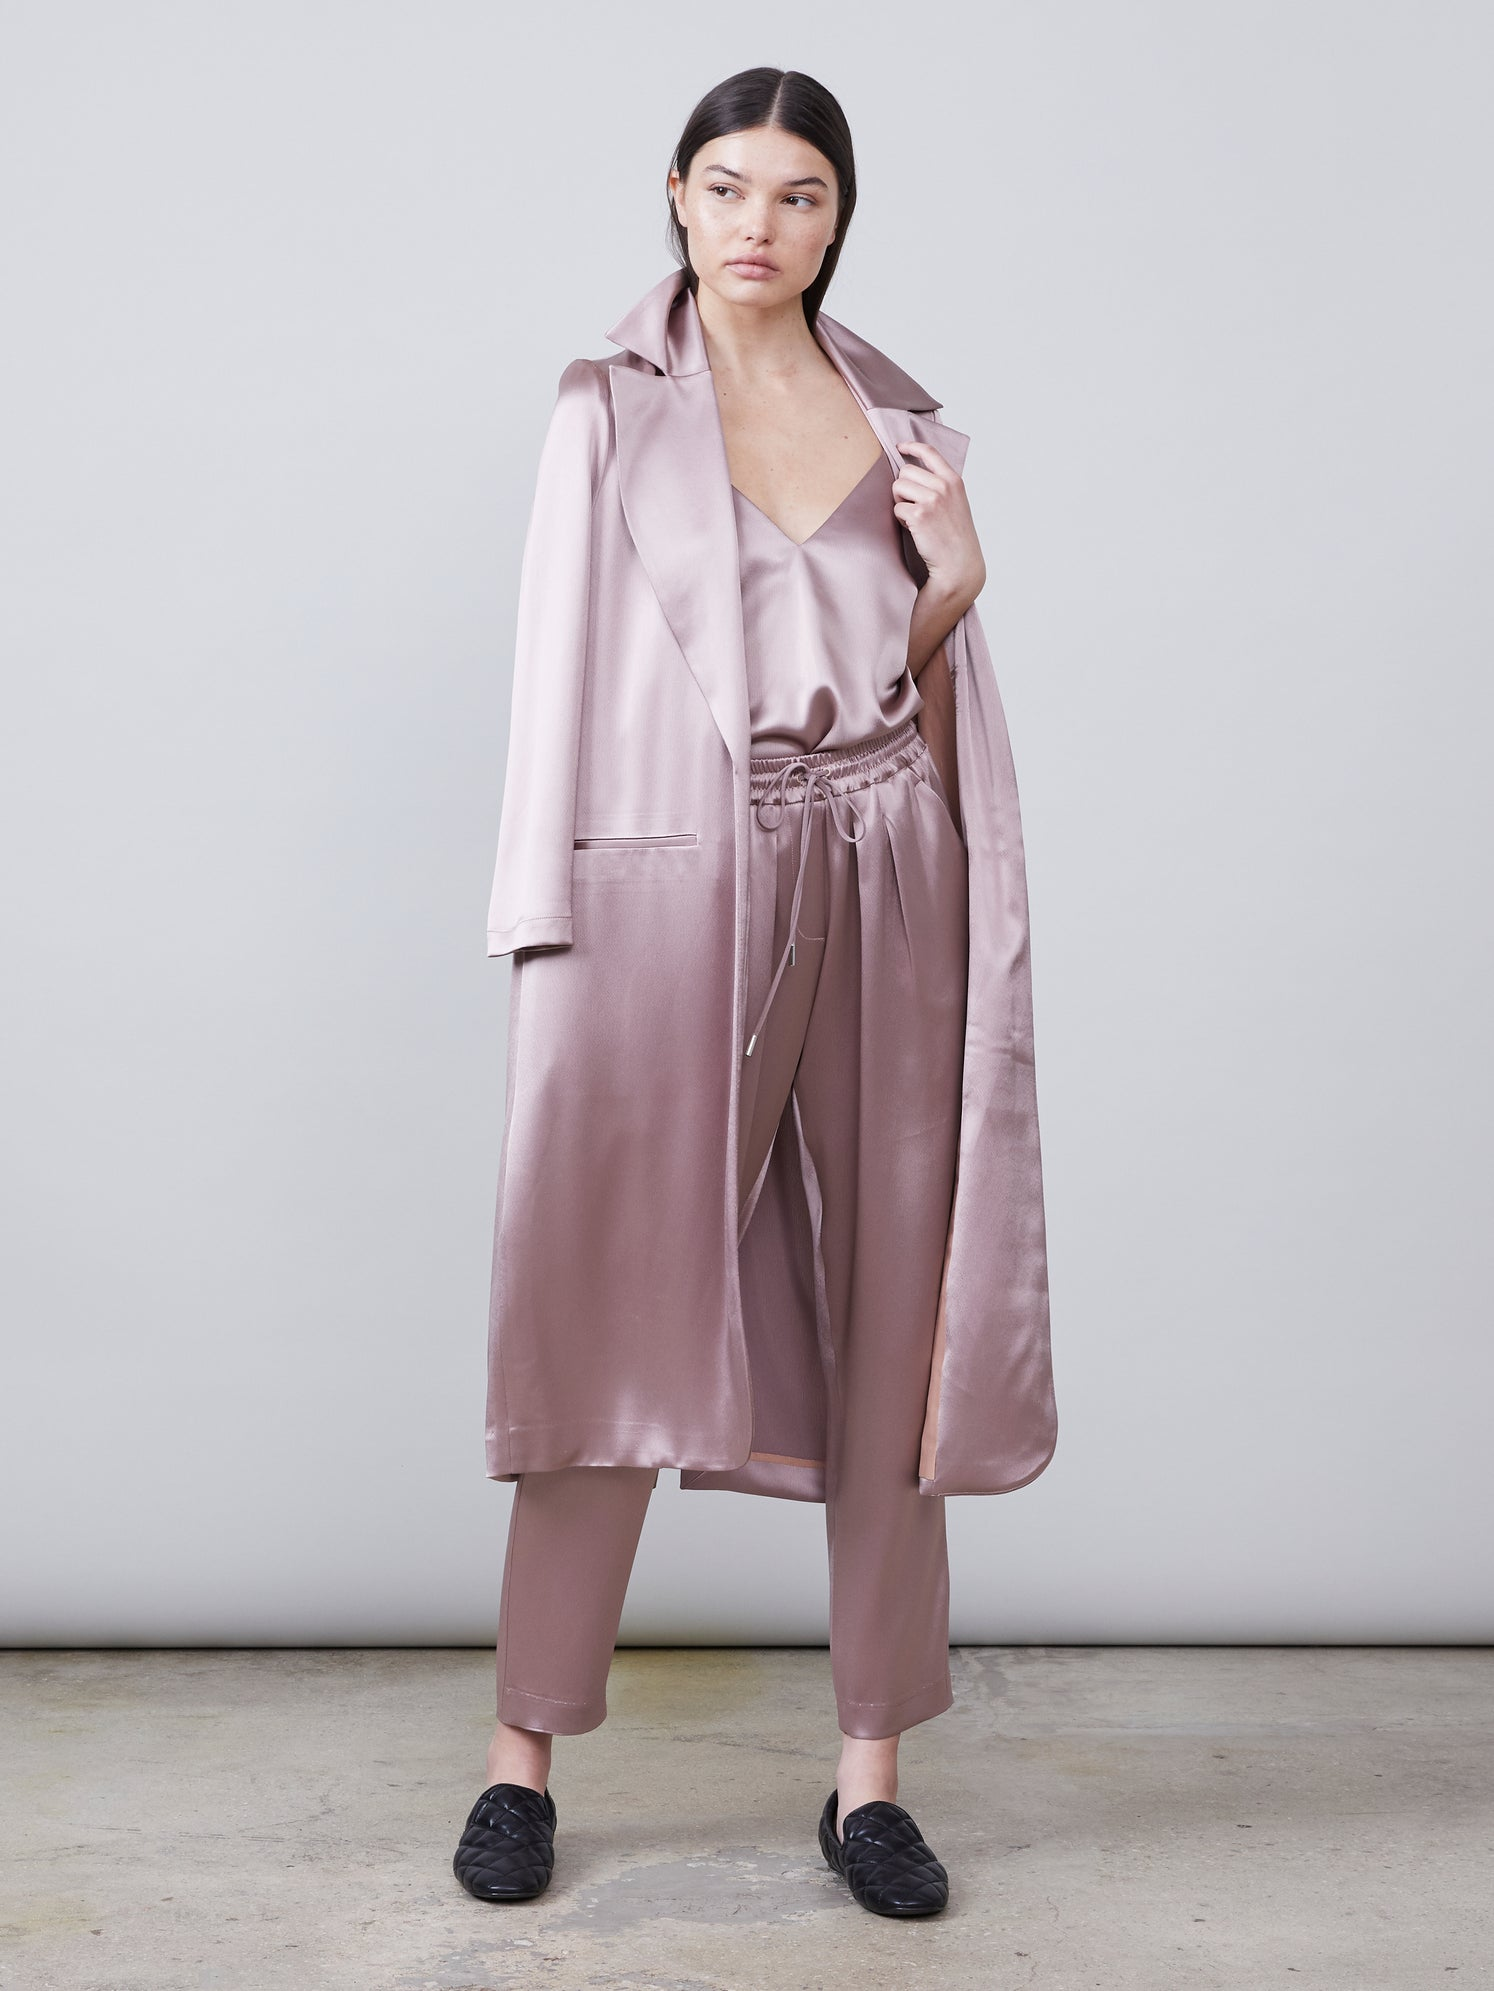 Full body view of the Alannah Deep-V Sustainable Satin Cami paired with the matching Trinity Sustainable Satin Track Pant and Carmen Sustainable Satin Jacket in mink